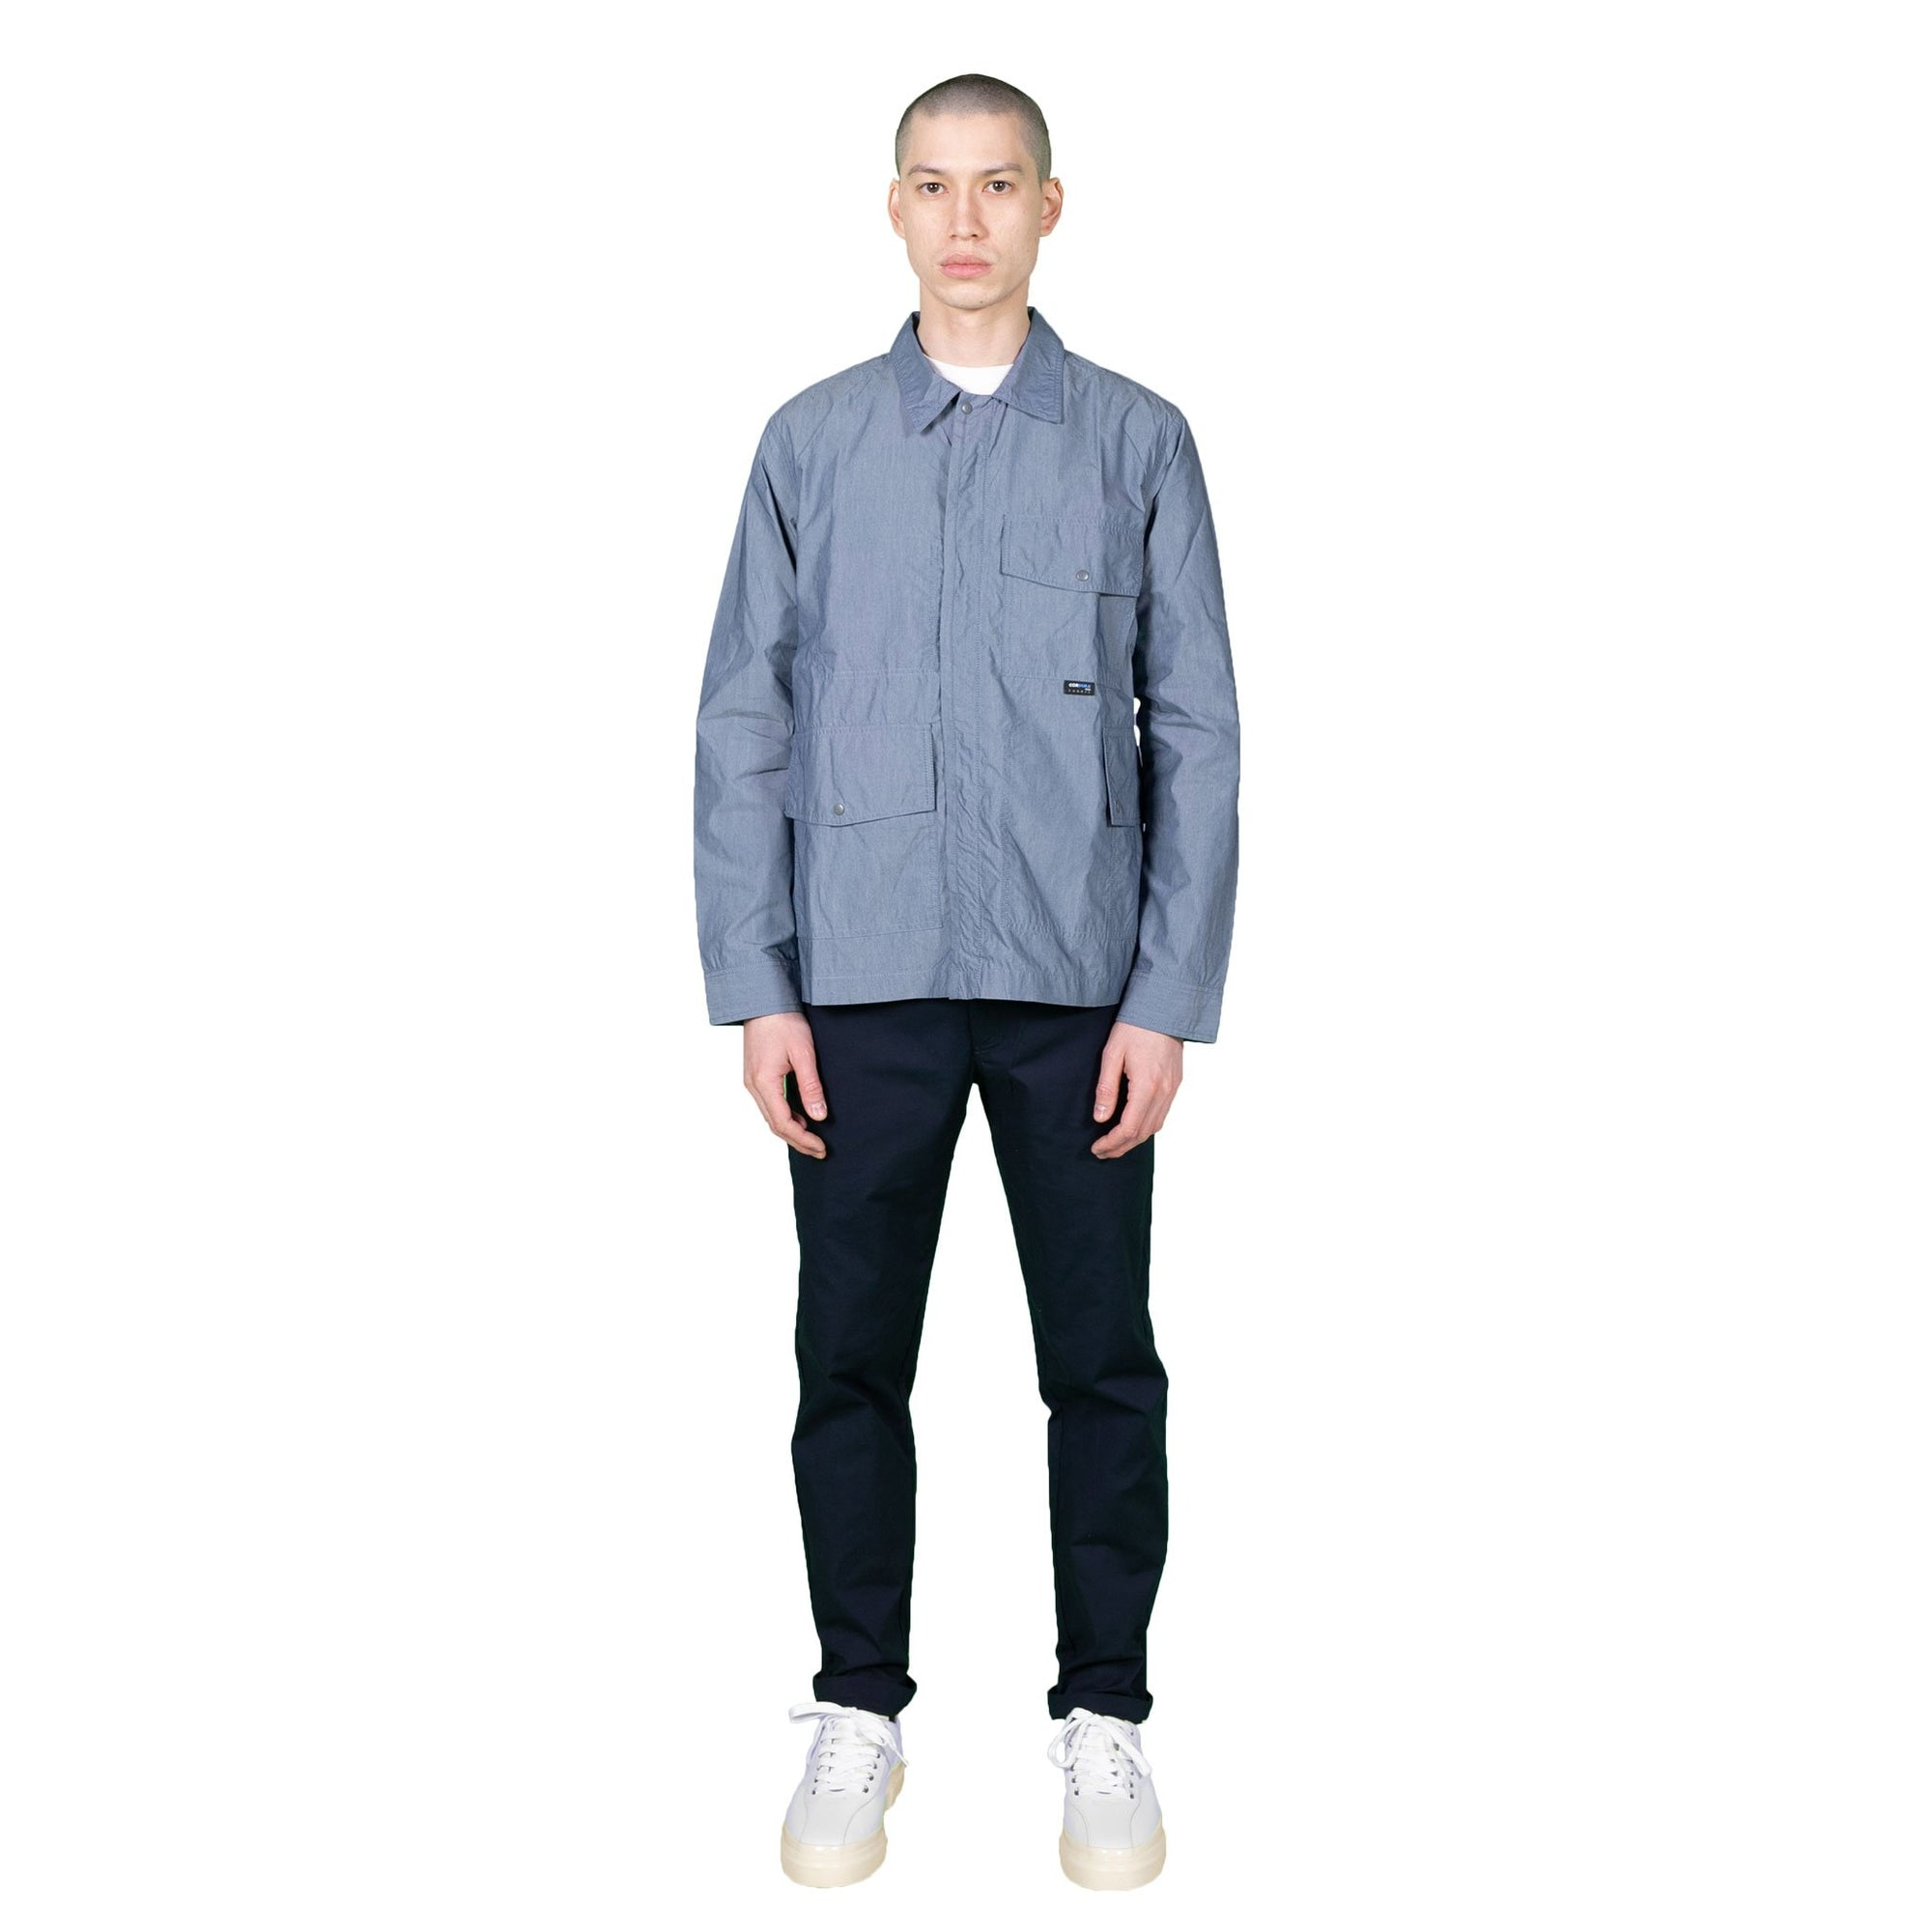 Garbstore Field Jacket in Slate Grey